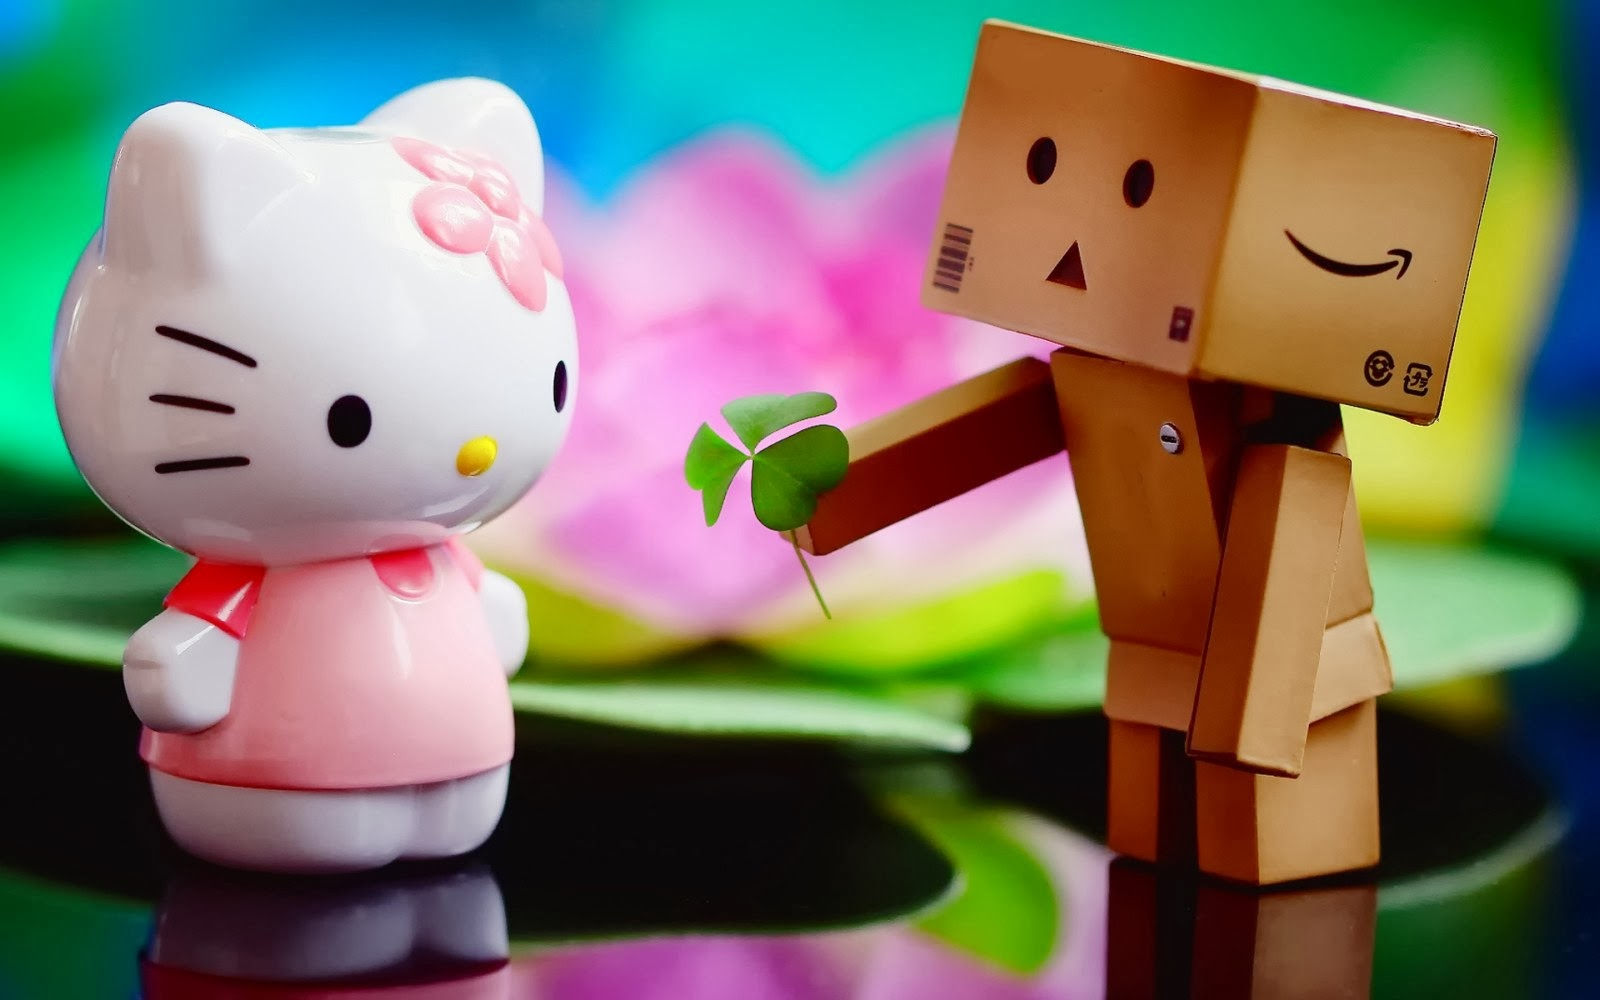 valentines day wallpaper hd of cute toys proposal